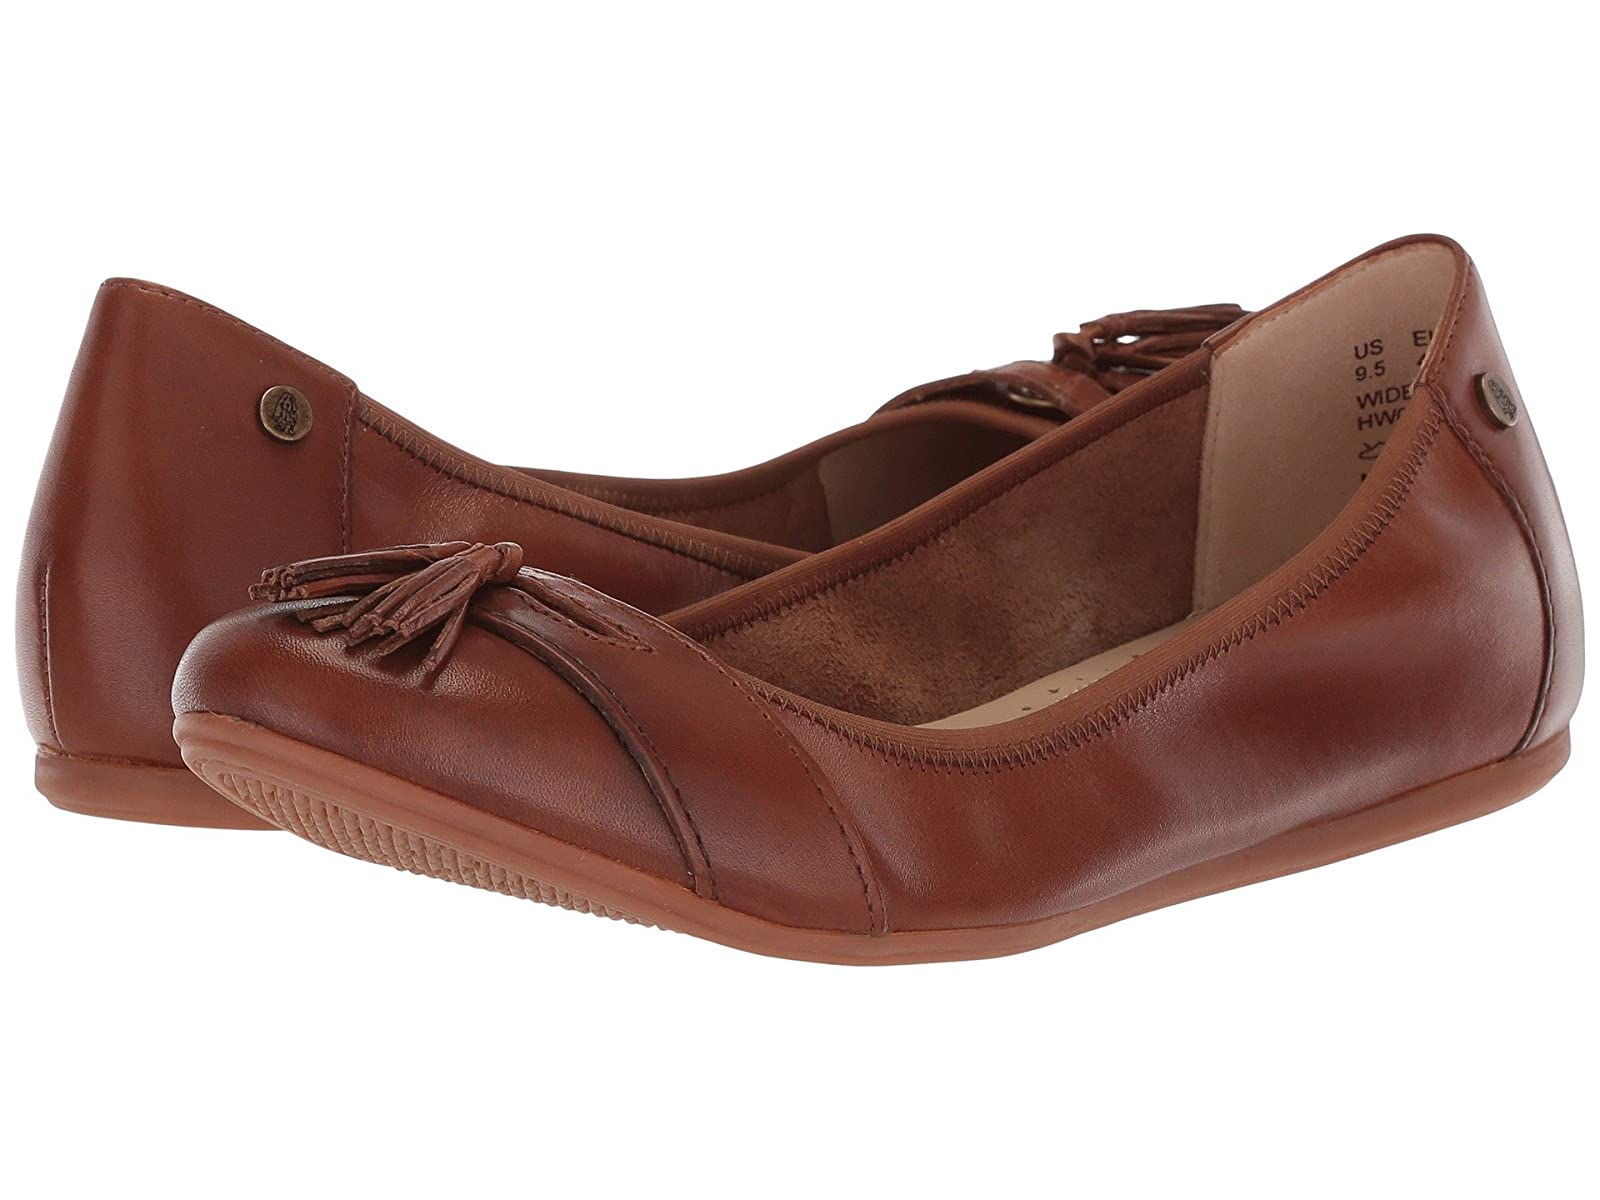 Hush Puppies Heather TasselAtmospheric grades have affordable shoes